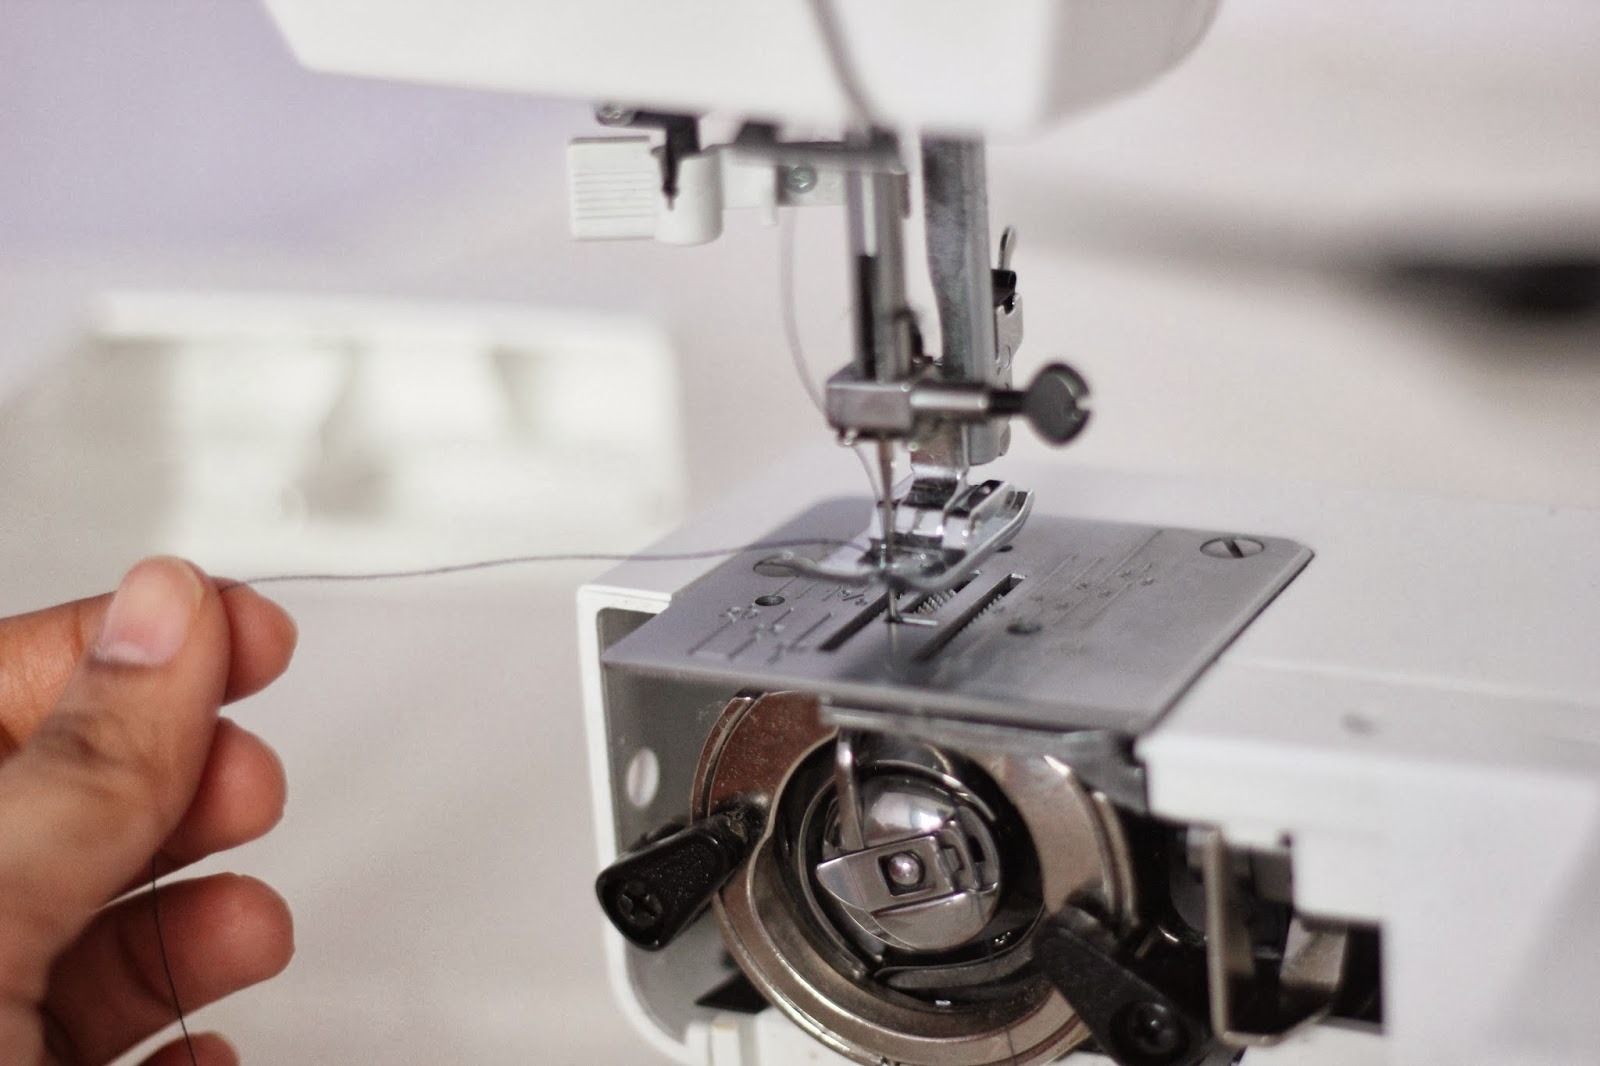 learn to use machine to stitch